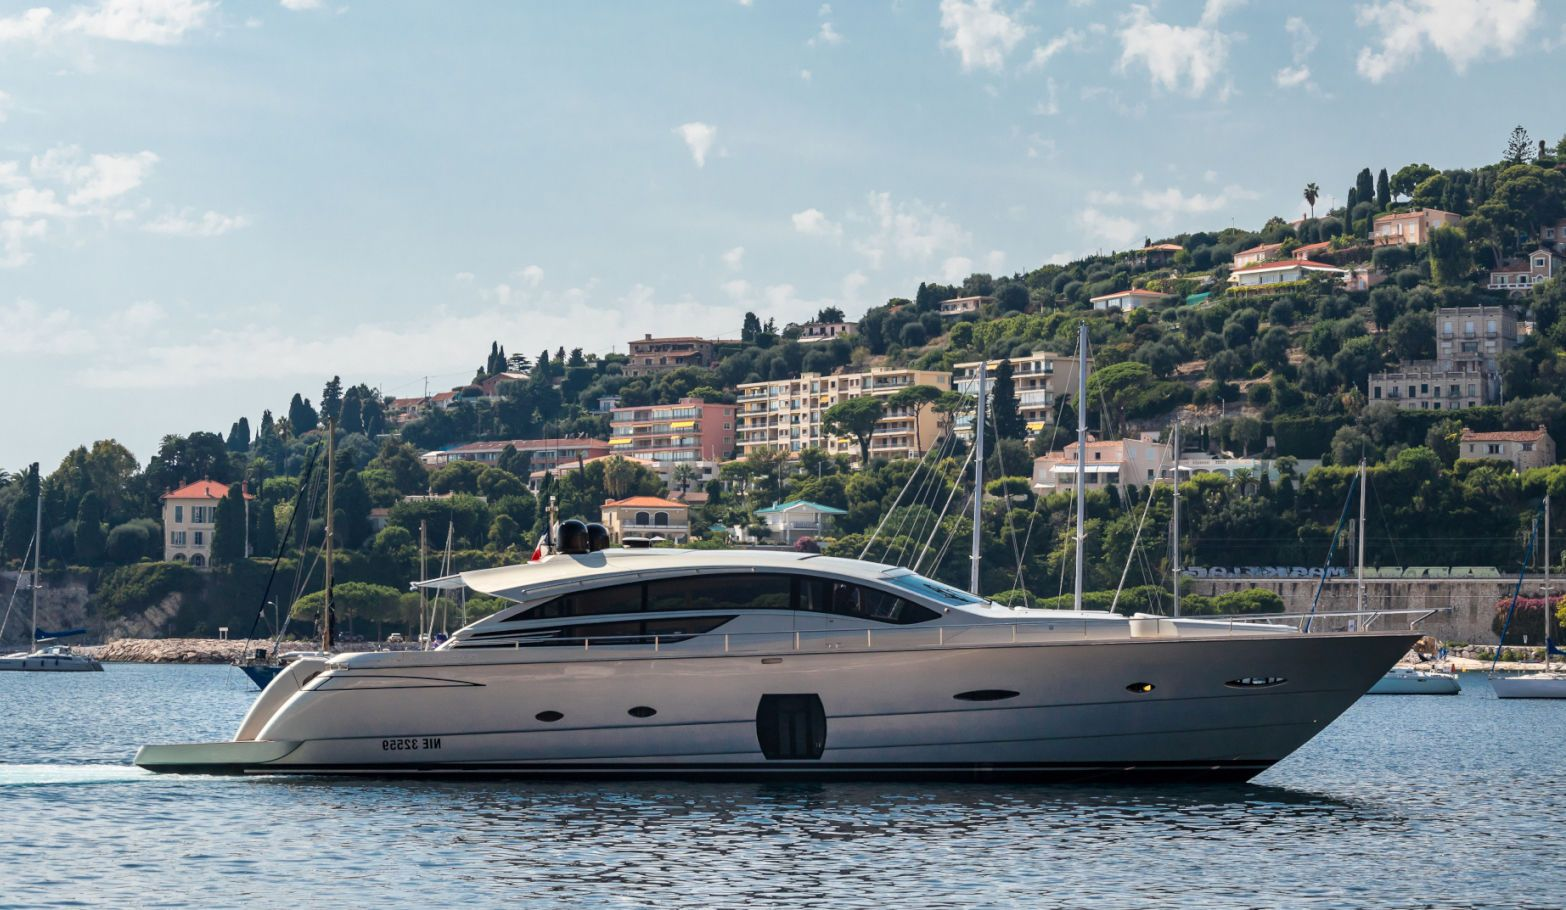 Lounor Pershing 80 (24.5m) yacht for Sale at anchor in Mediterranean